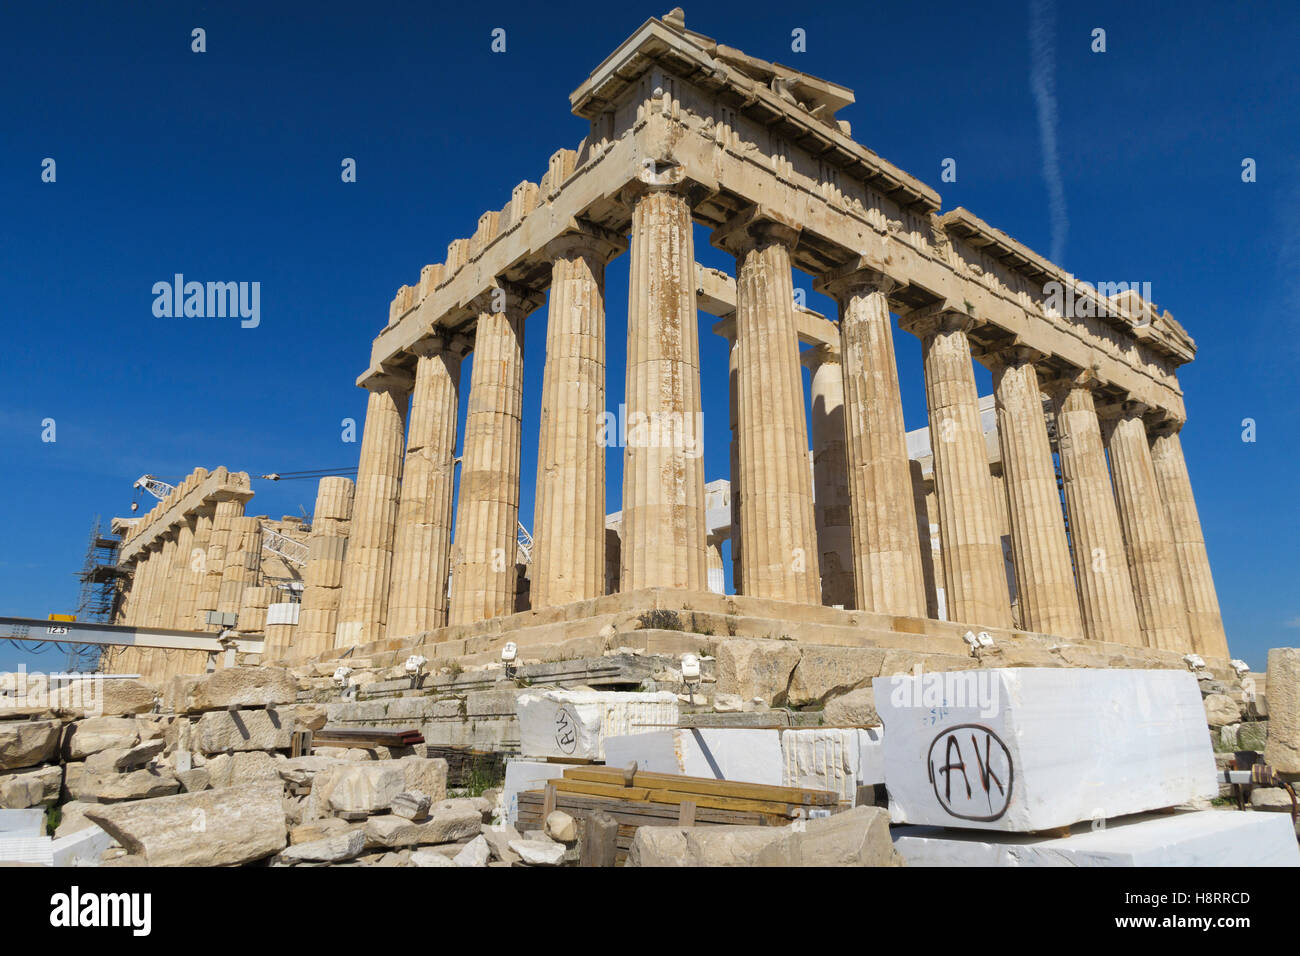 Parthenon at the Acropolis of Athens, Greece - Stock Image